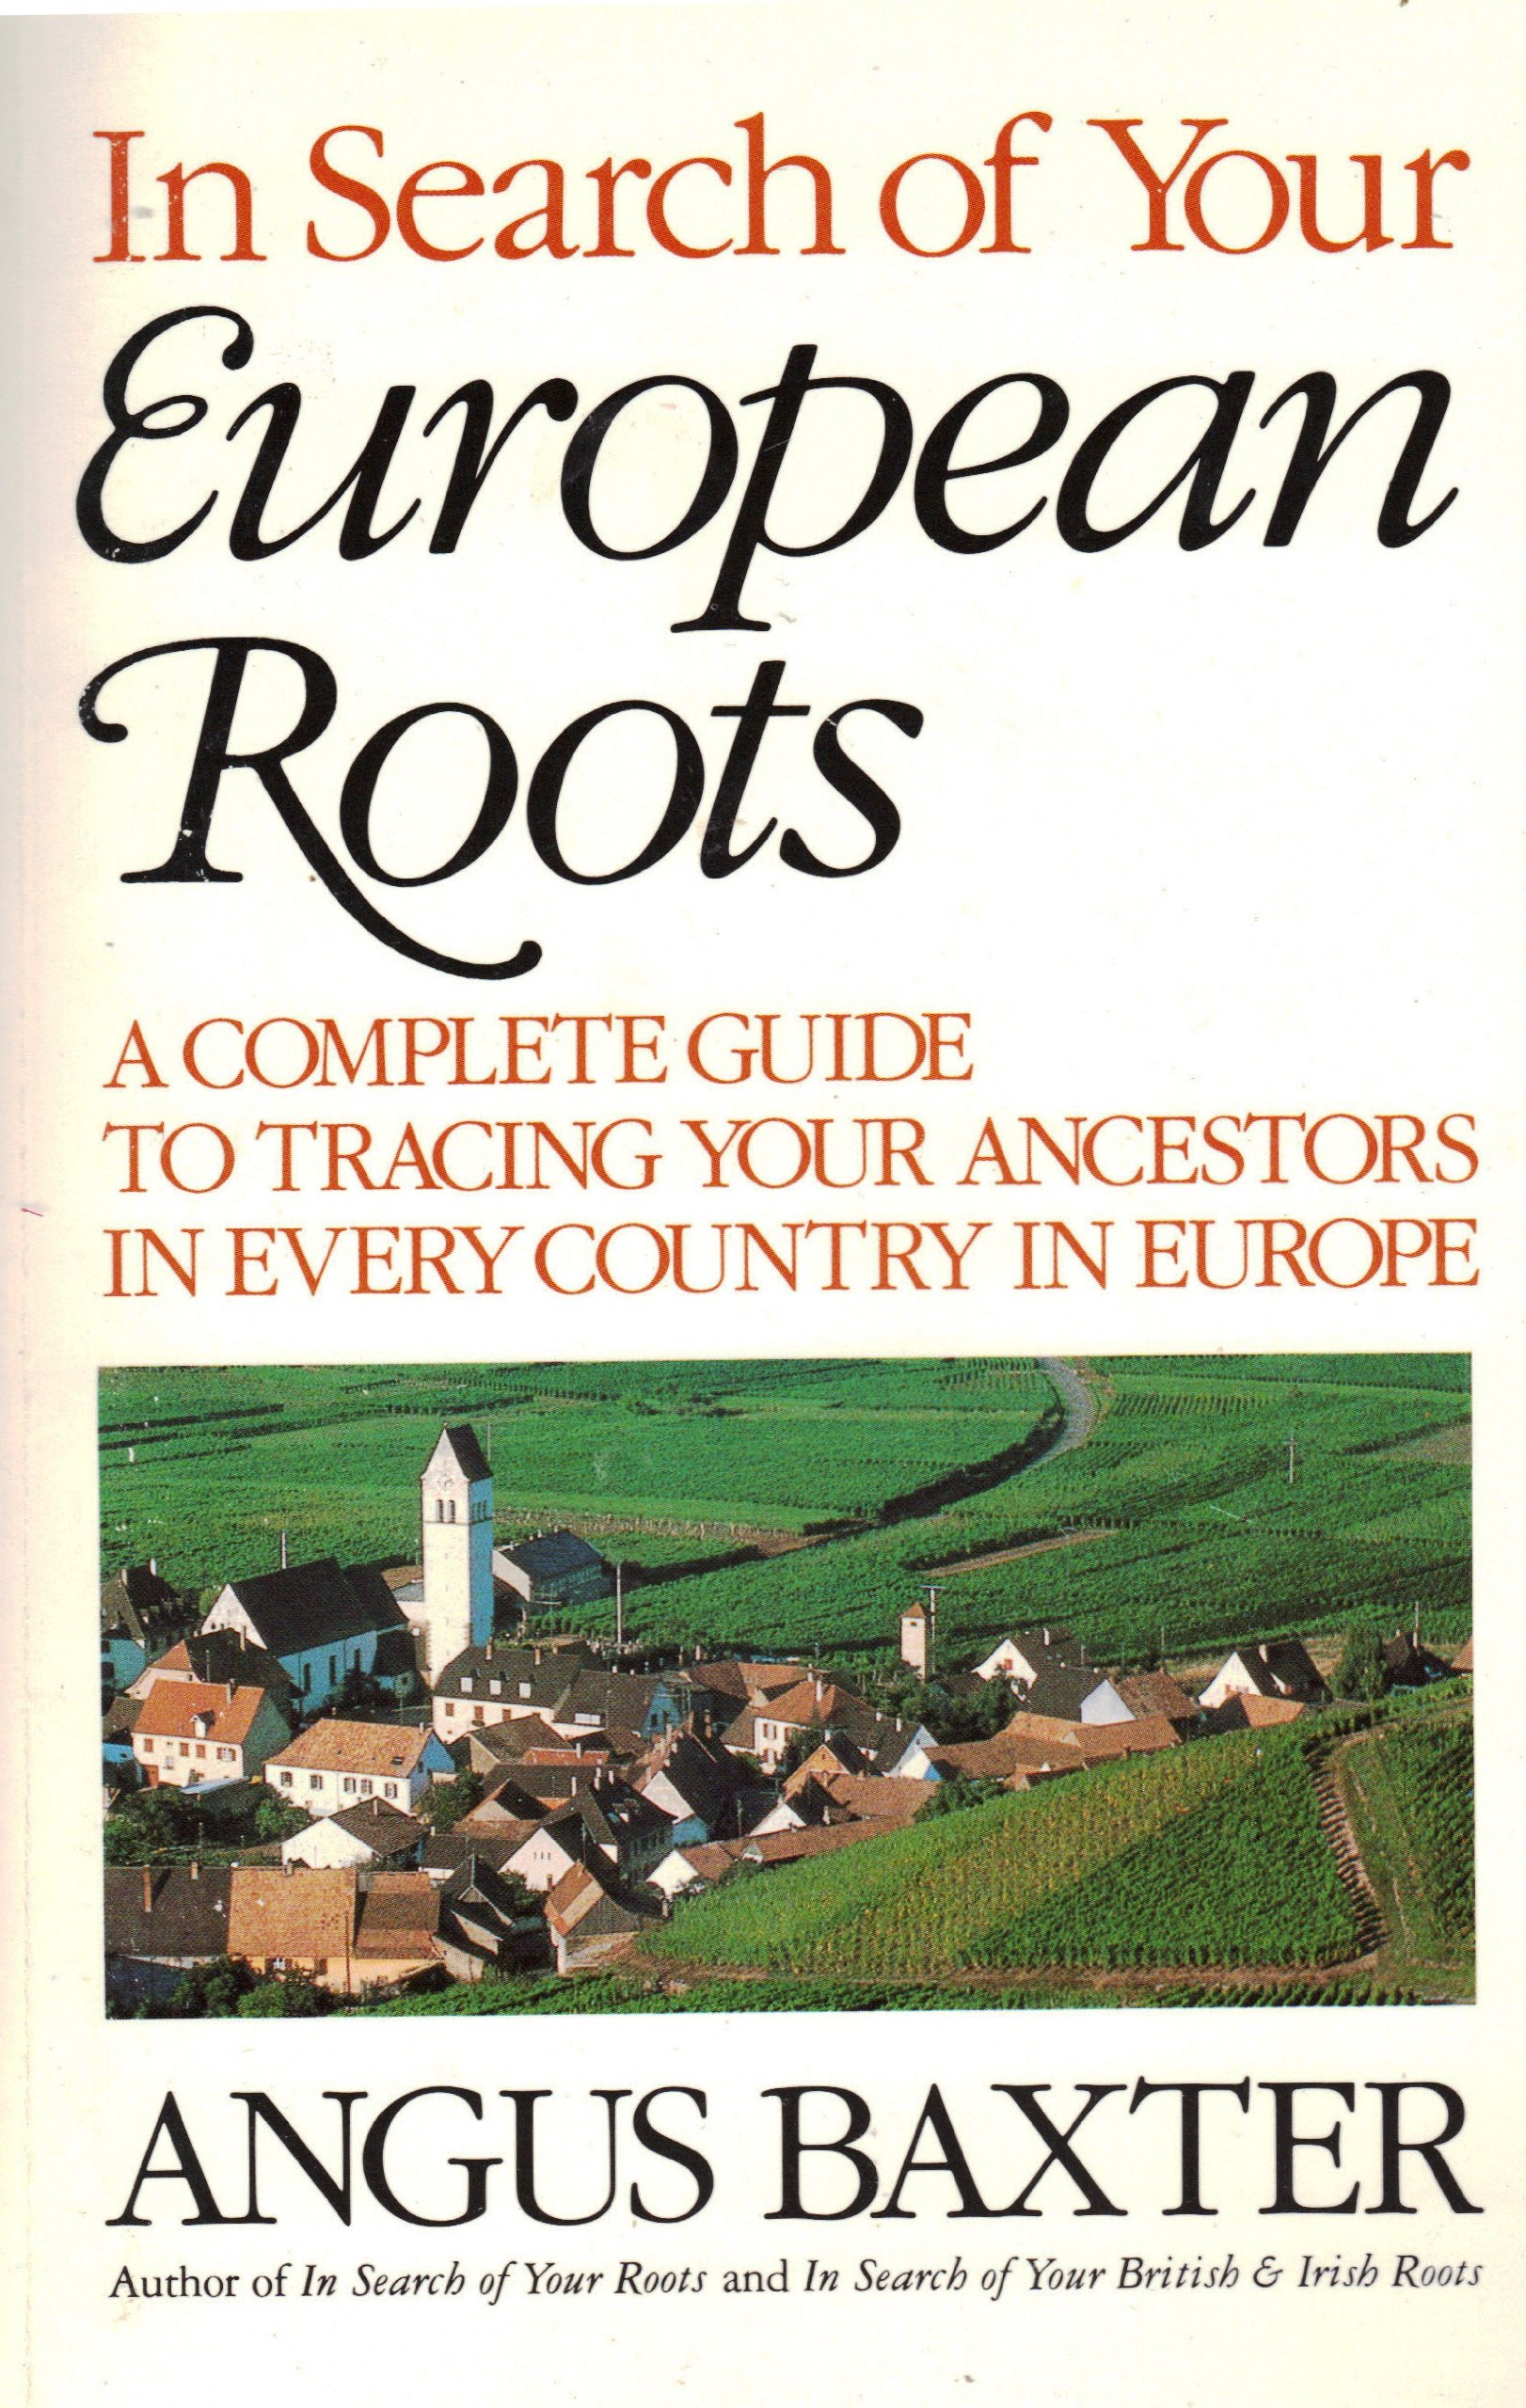 in search of your european roots: a complete guide to tracing your  ancestors in every country in europe: angus baxter: 9780771598807:  Amazon.com: Books